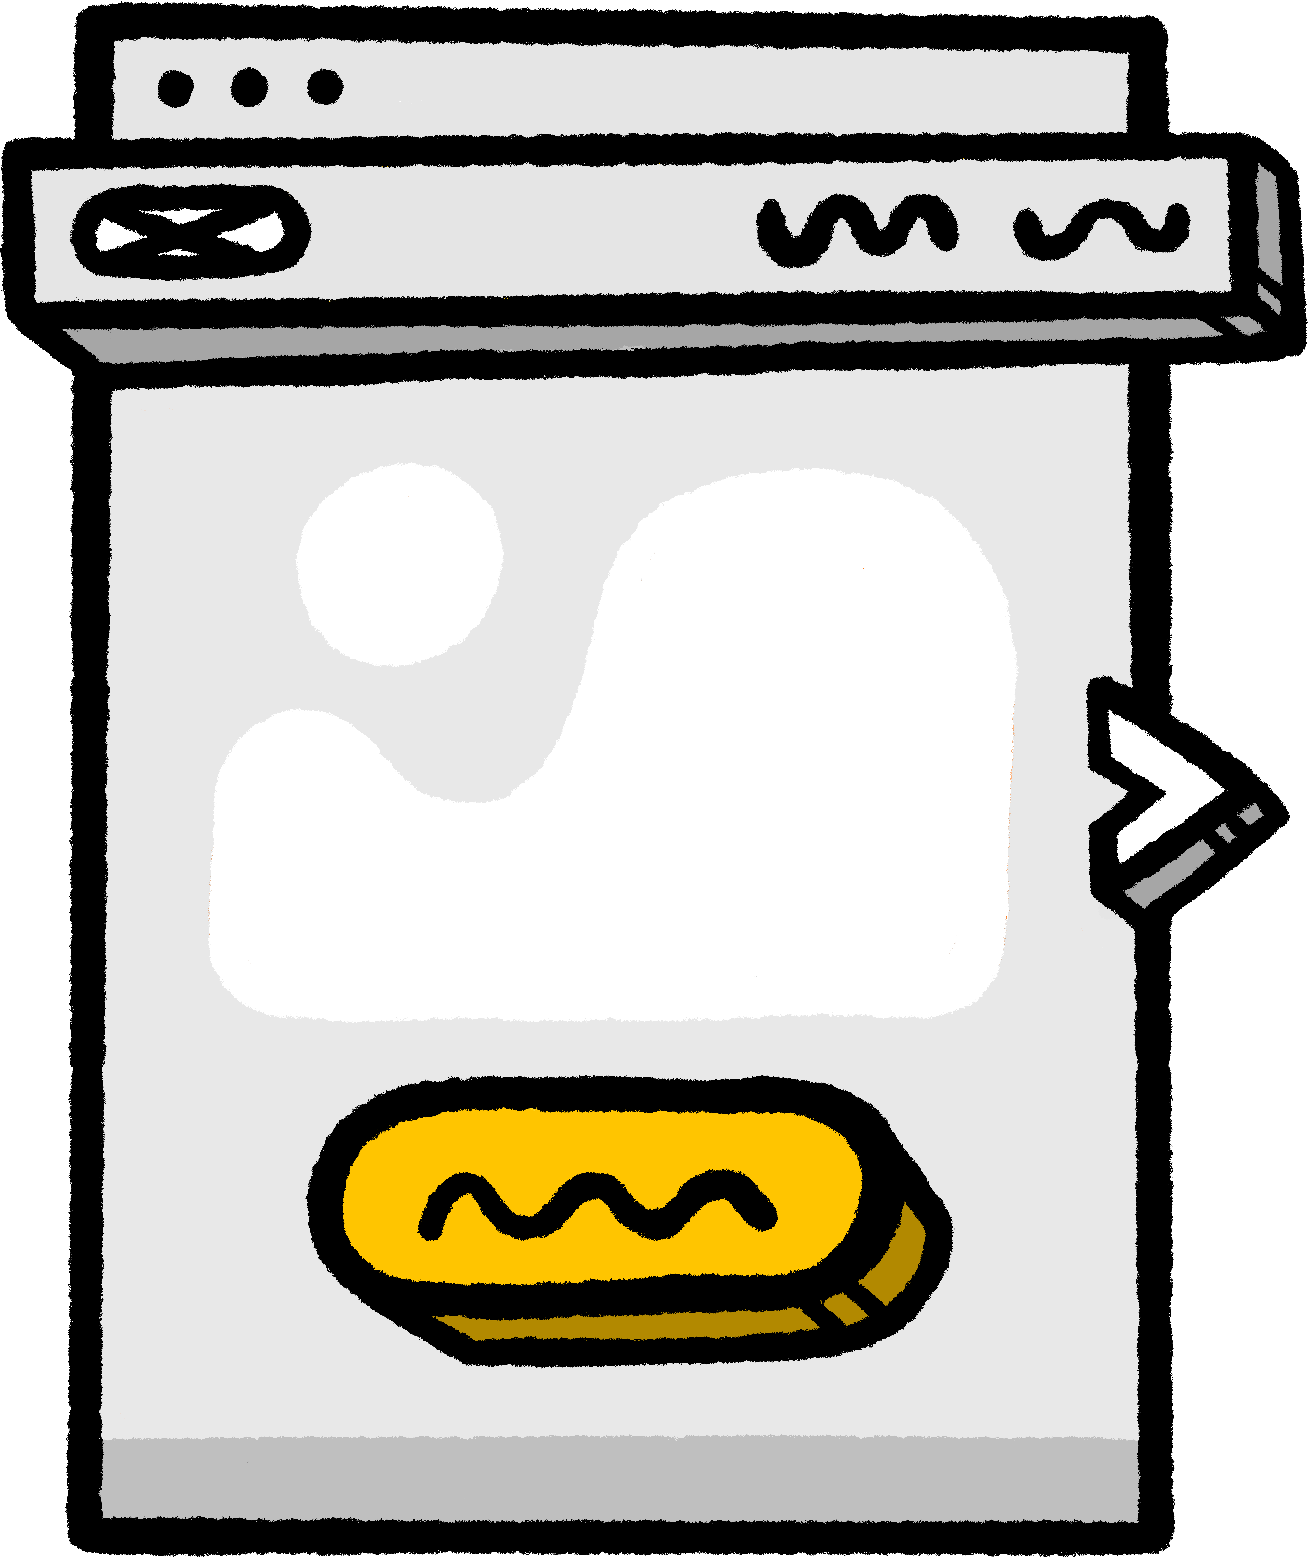 Illustration of a homepage banner with a button.